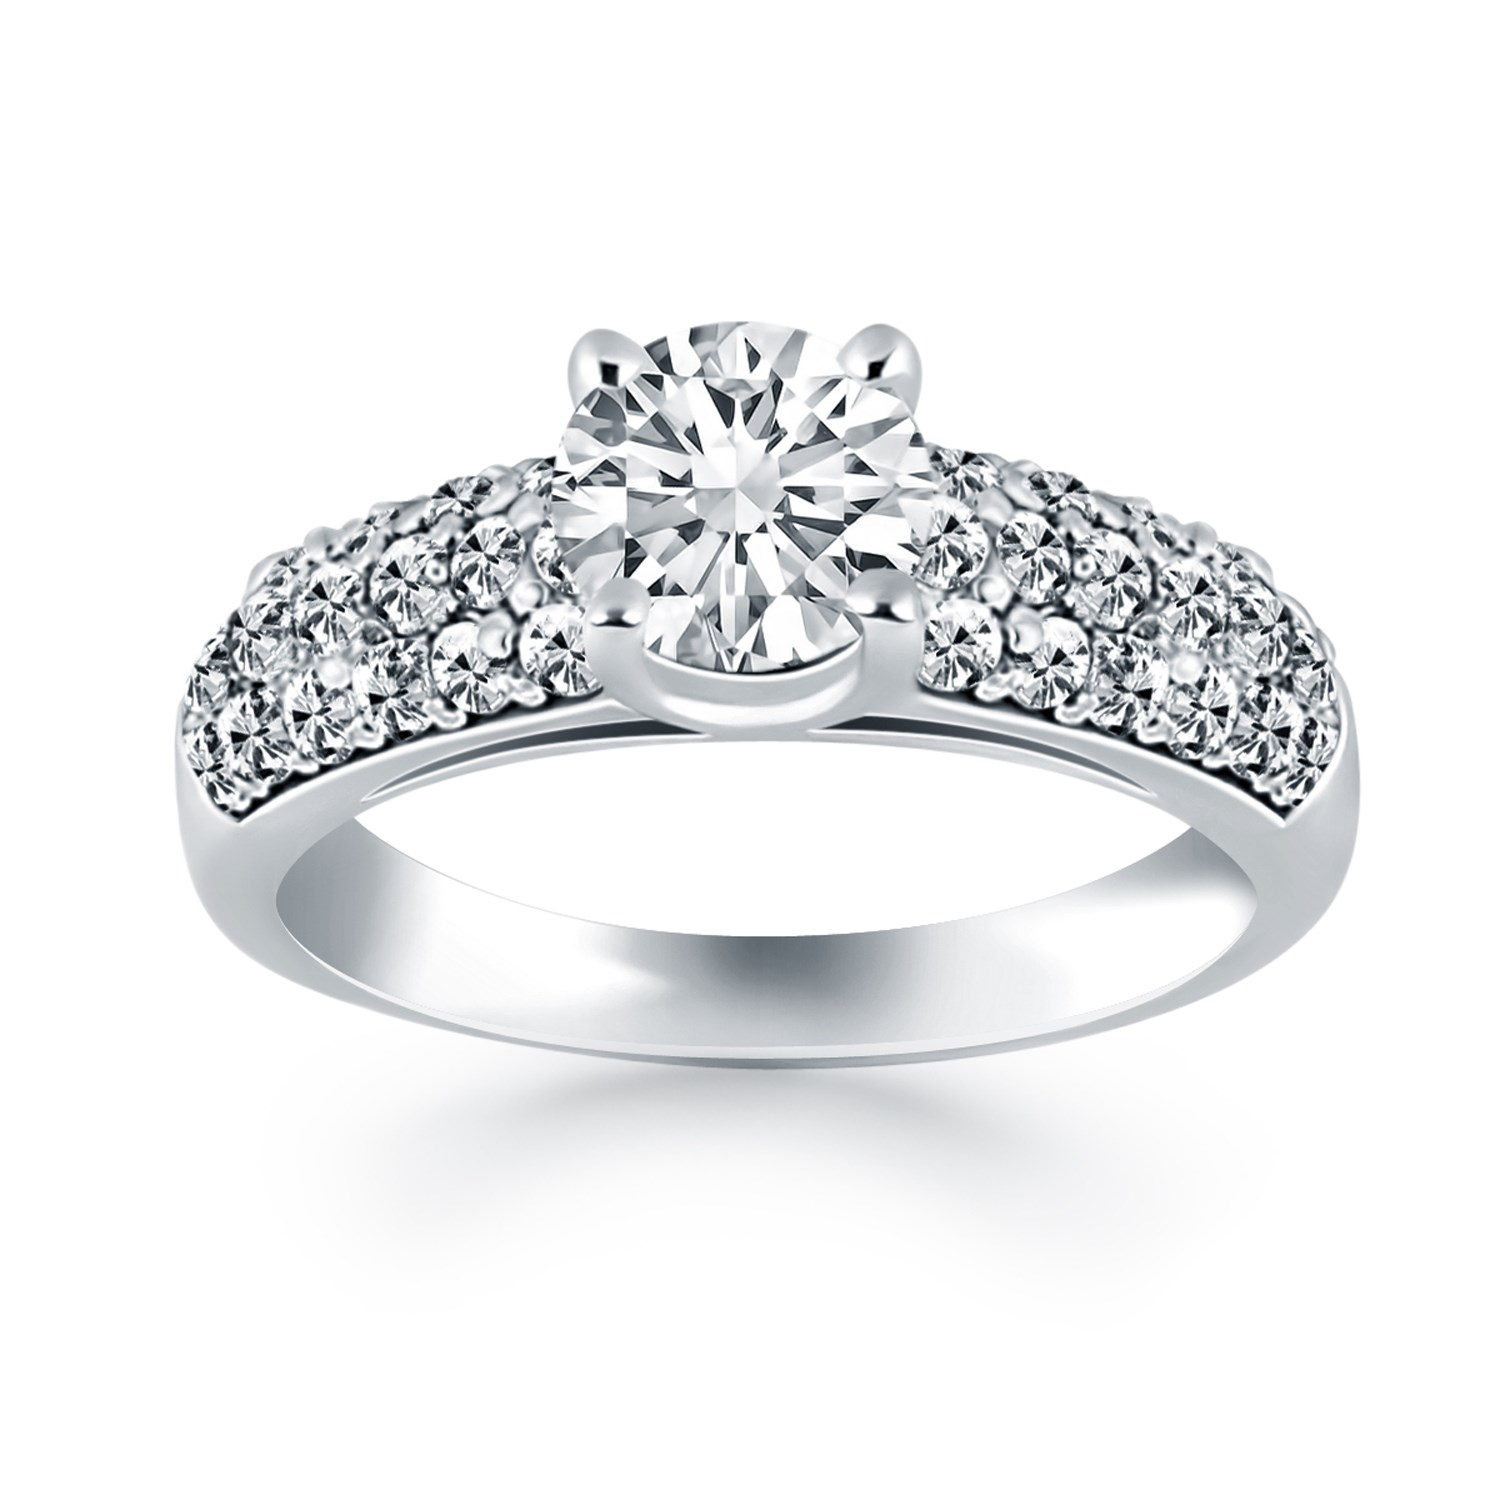 ring princess full band bands wedding cut luxury download rings wide engagement size elegant diamond new